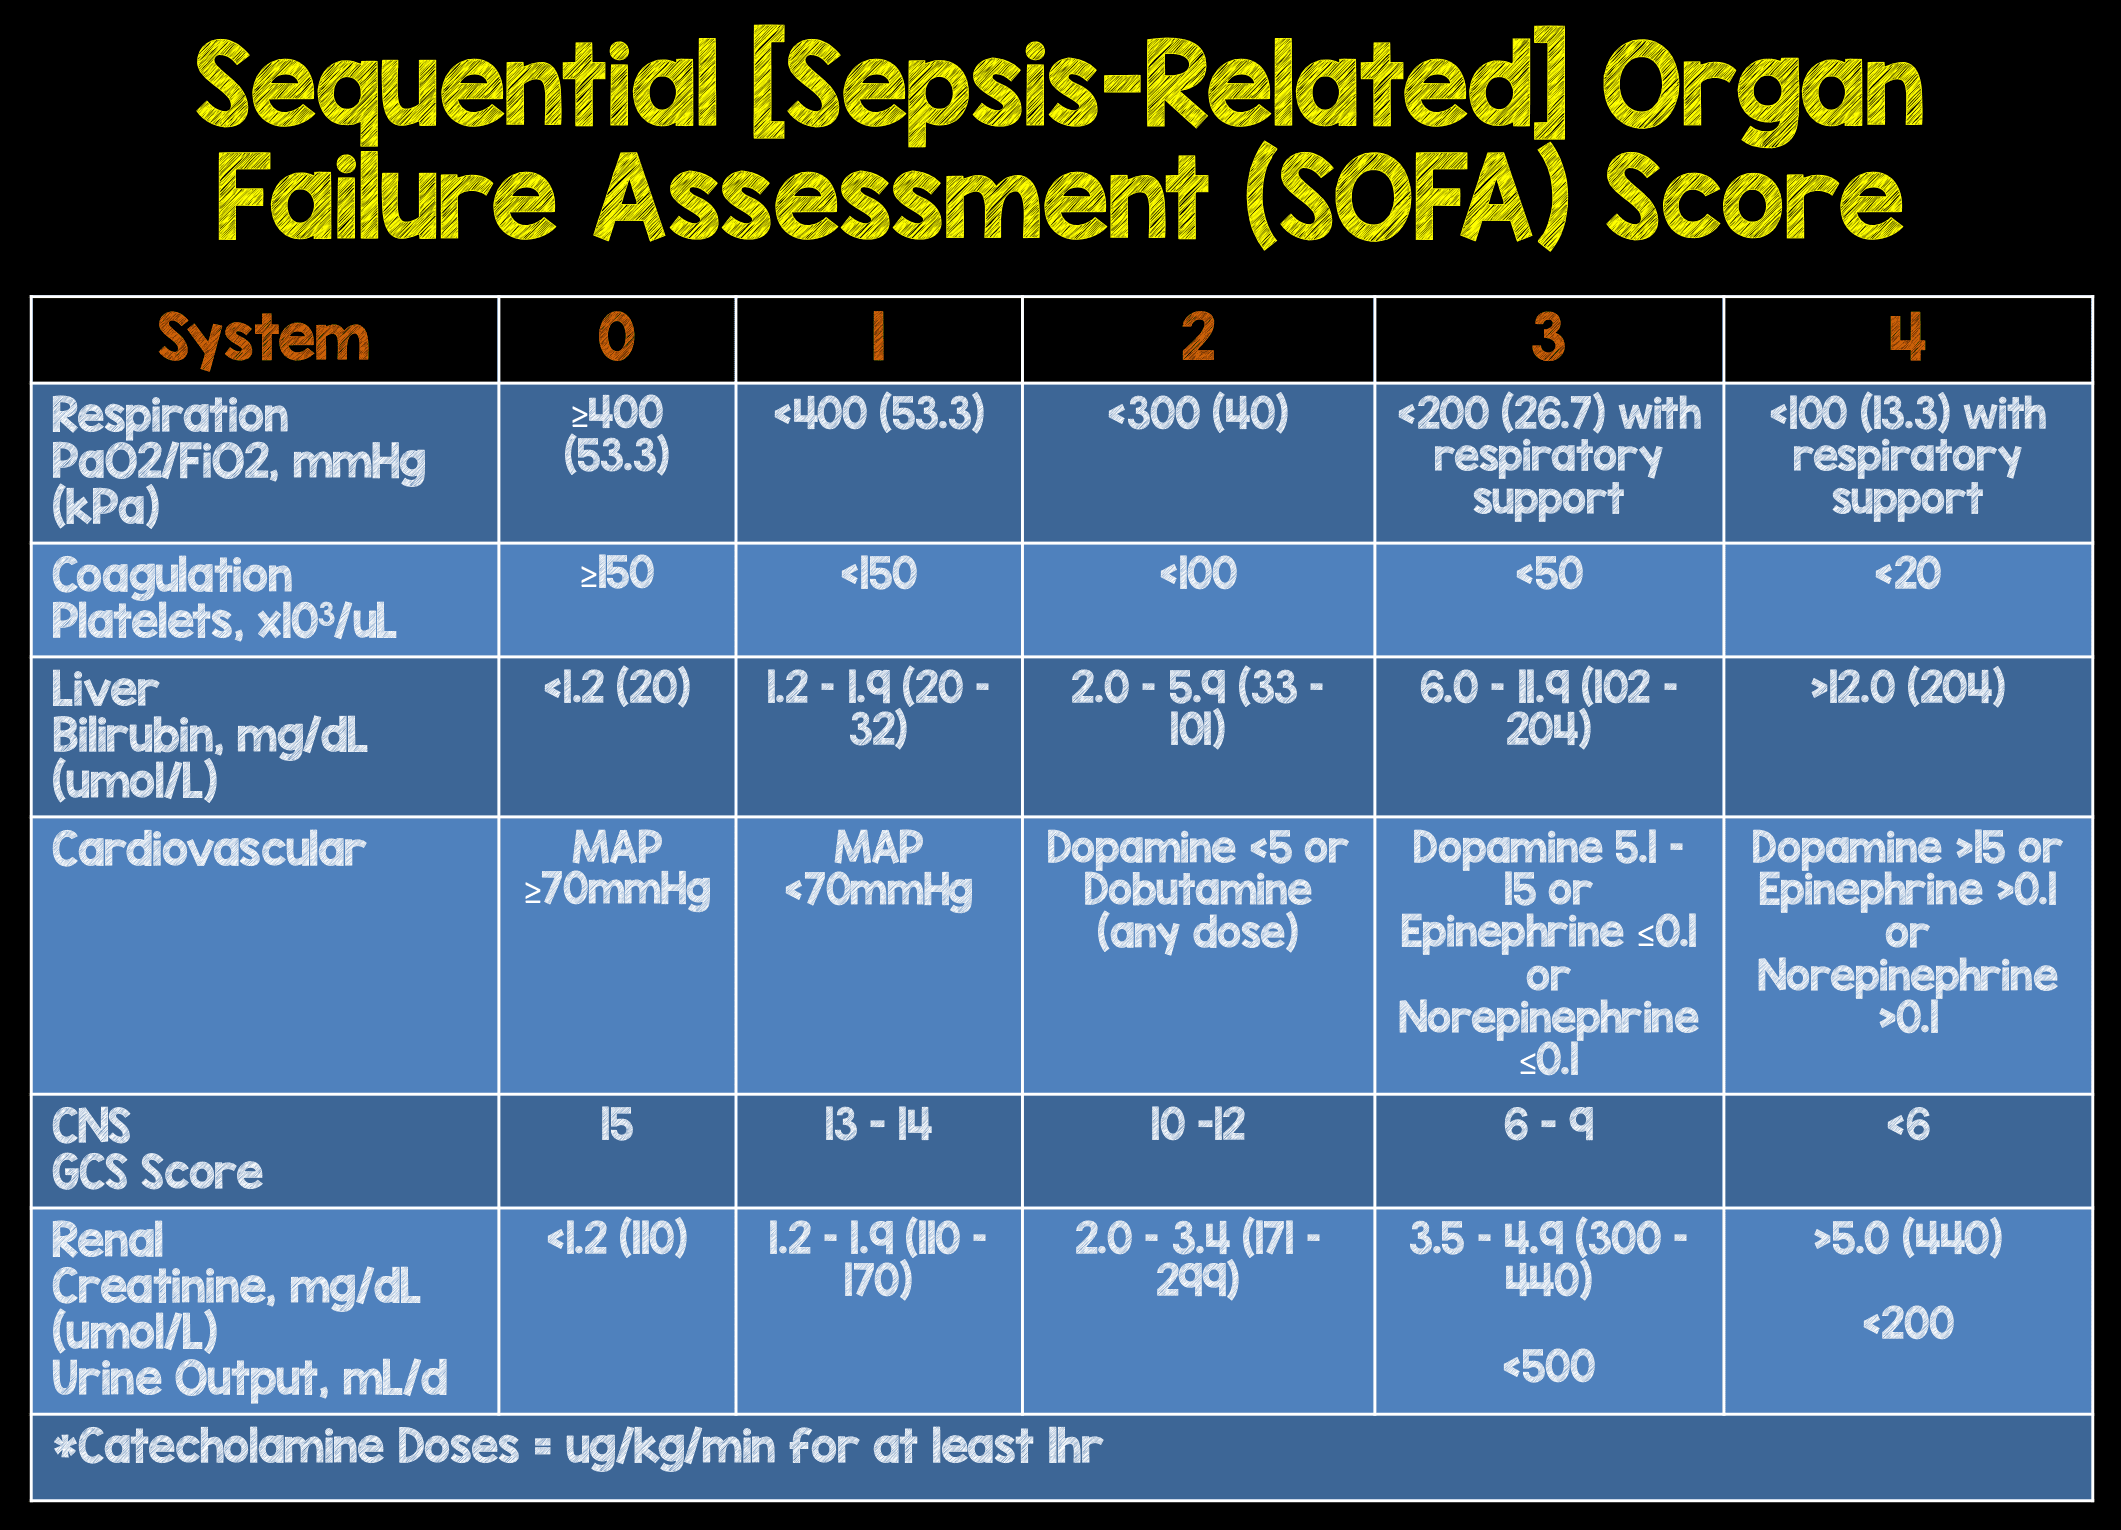 sofa score icu mortality how to clean white bonded leather sepsis baci living room